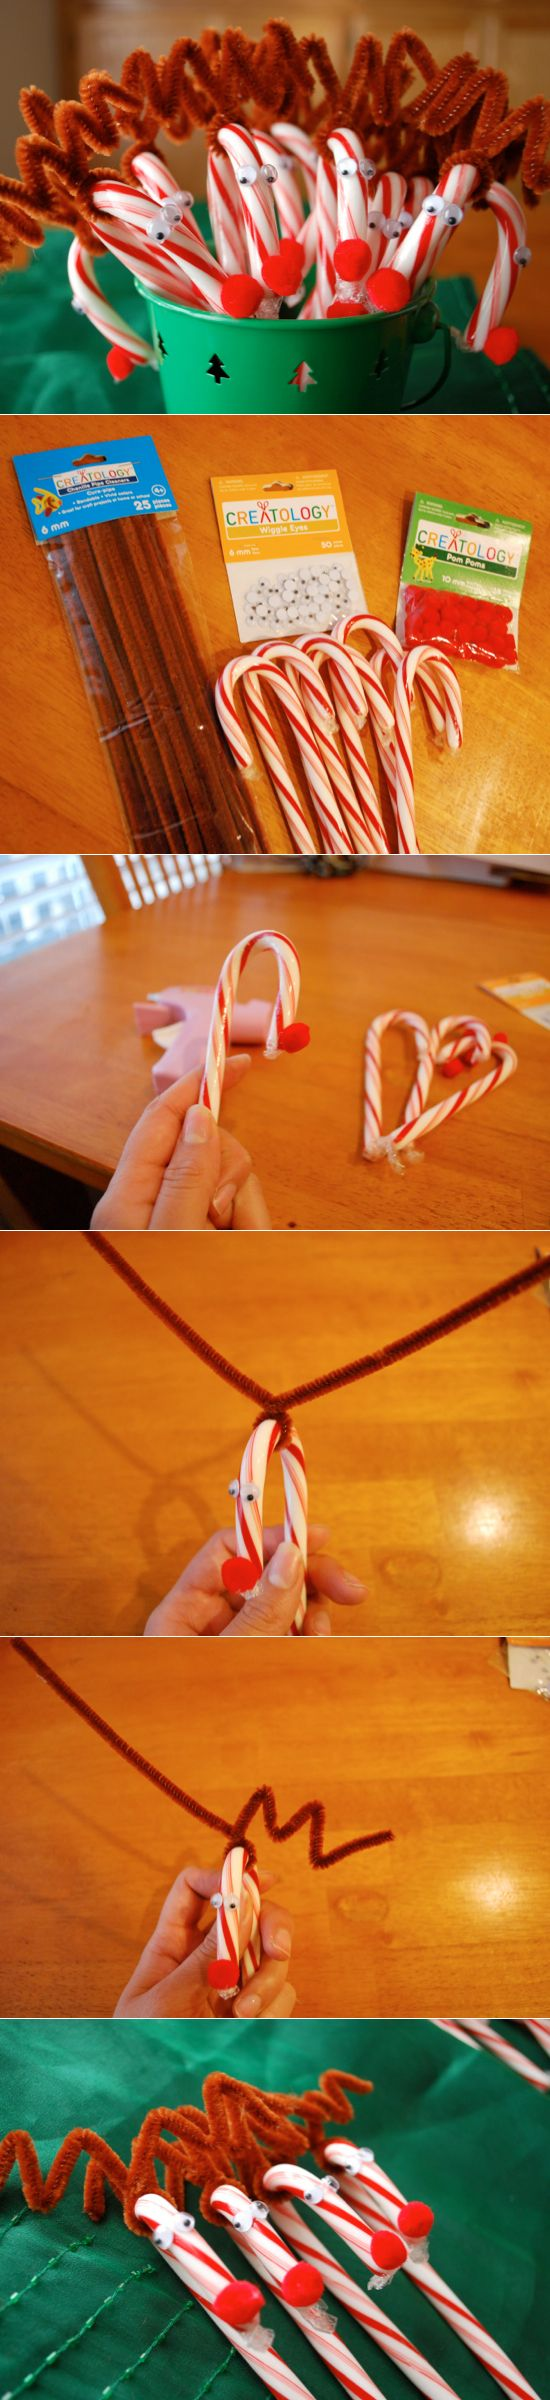 reindeer candy cane craft..ha! i made these years ago and the idea was not from pinterest lol